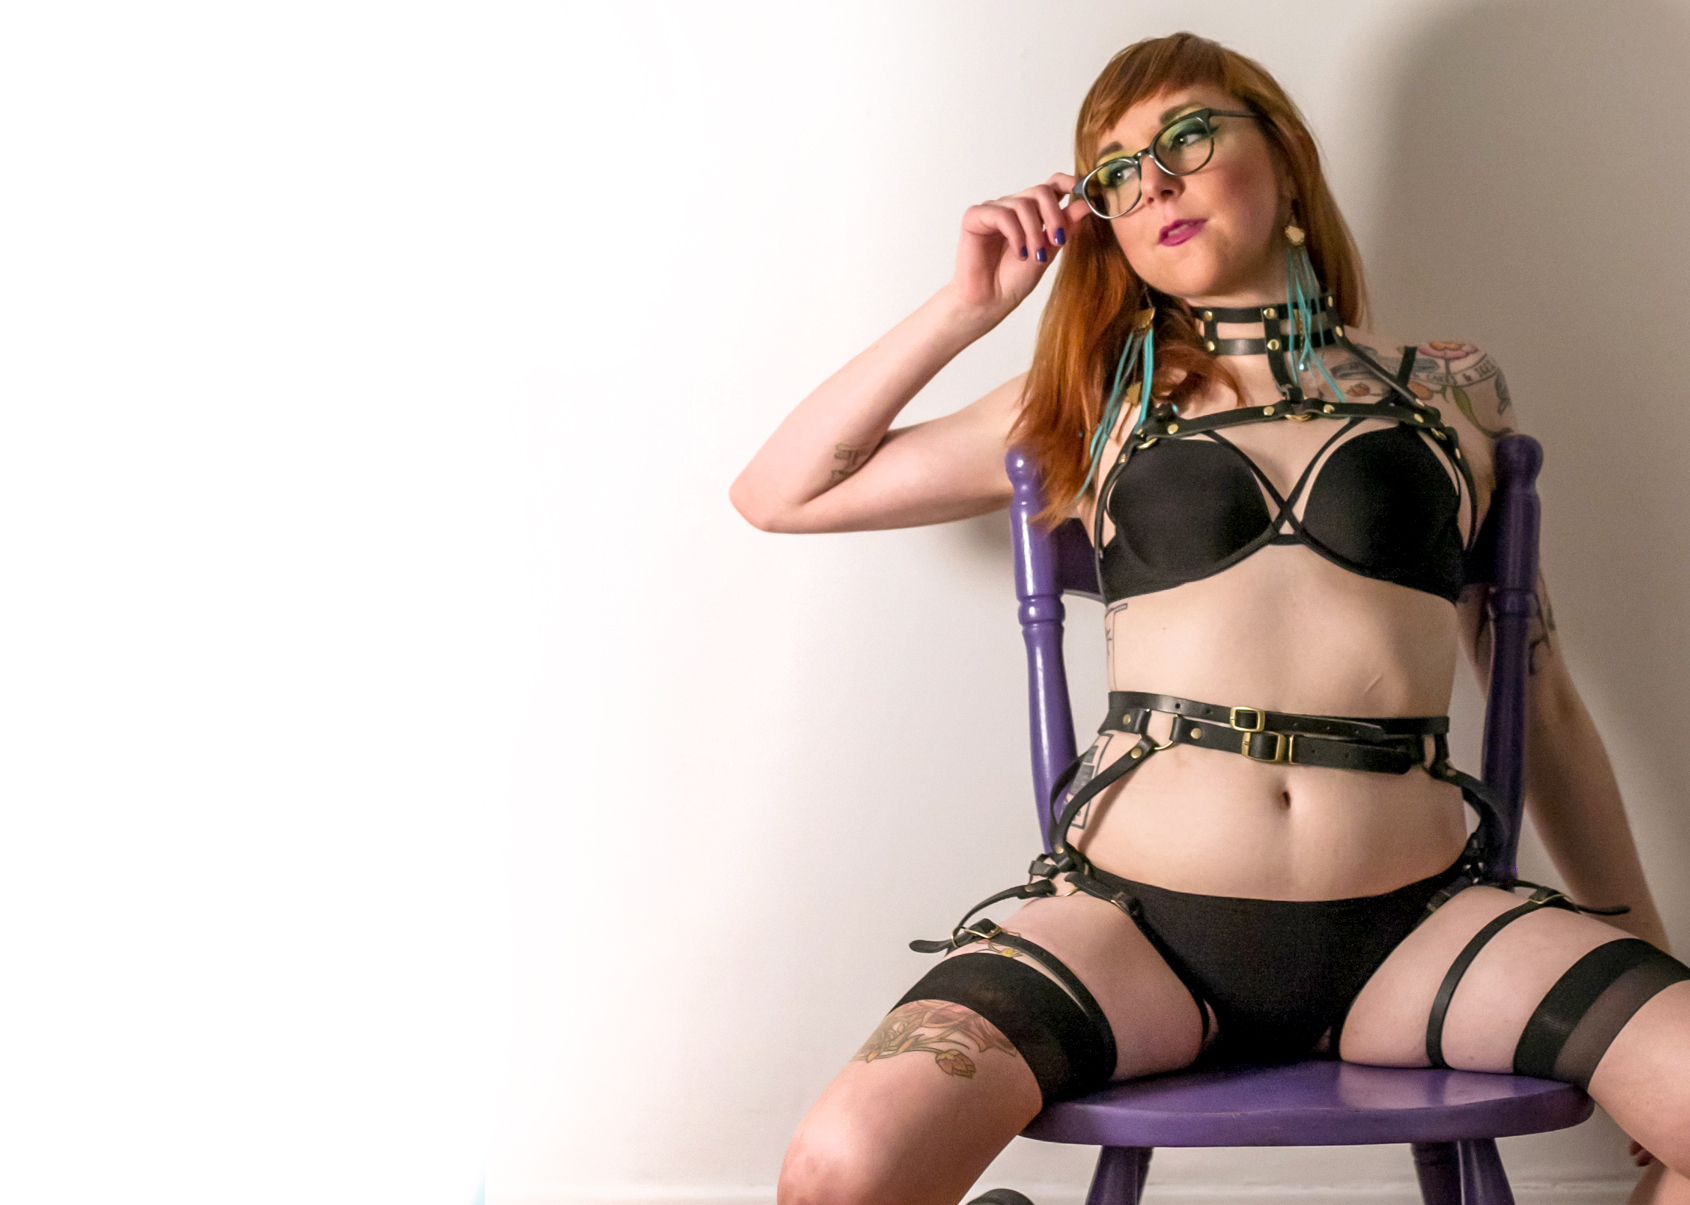 Emma Alamo, seated on a chair wearing black lingerie and several belted harnesses. Photo credit: Matthew Gregory Hollis.